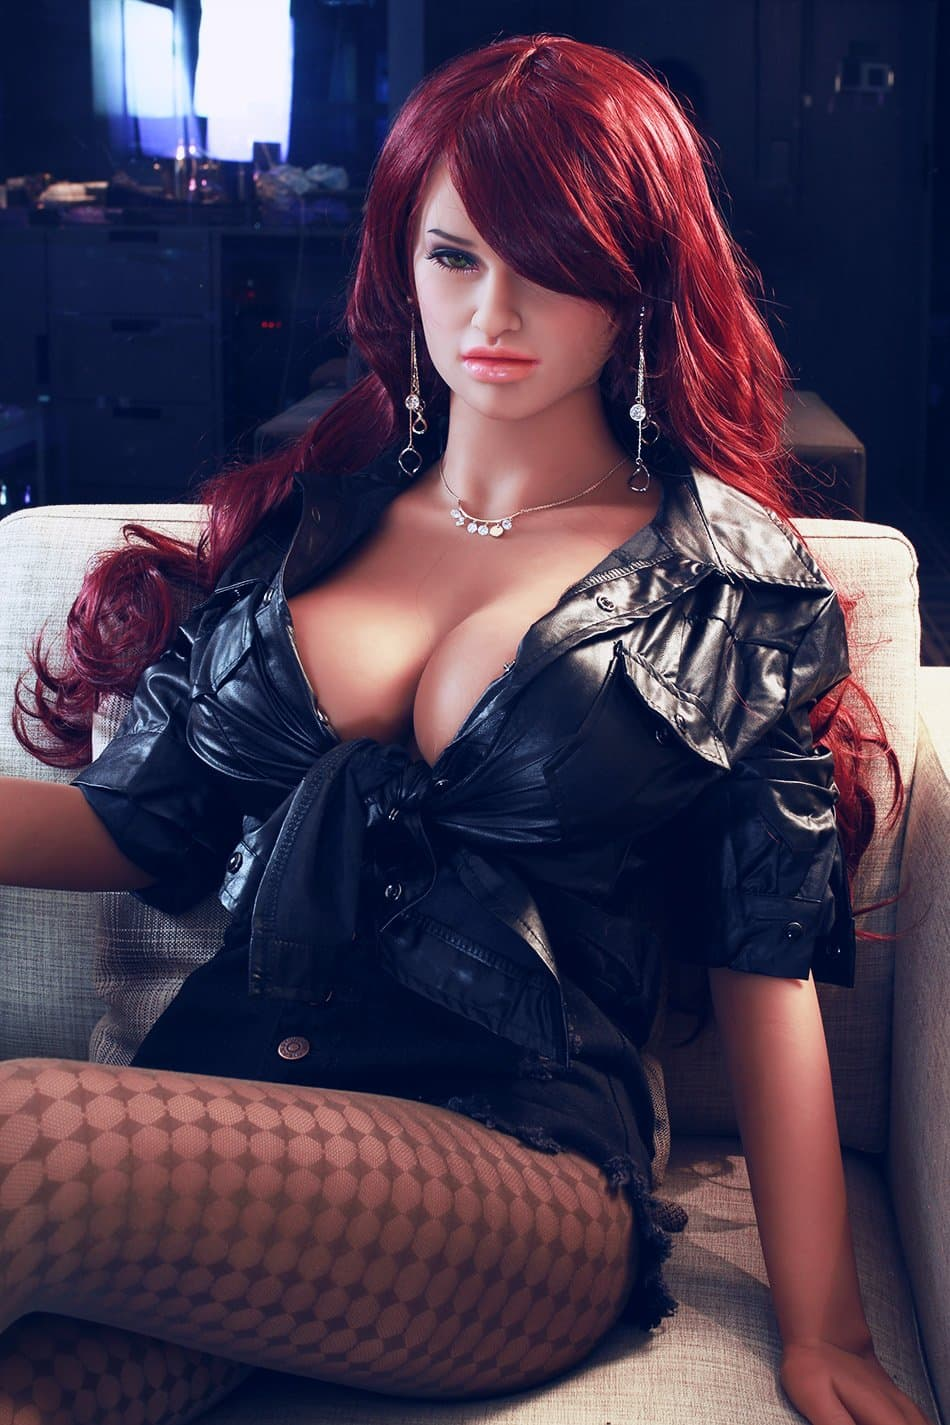 corina 165cm jy big boobs athletic red hair tan skin tpe sex doll(5)